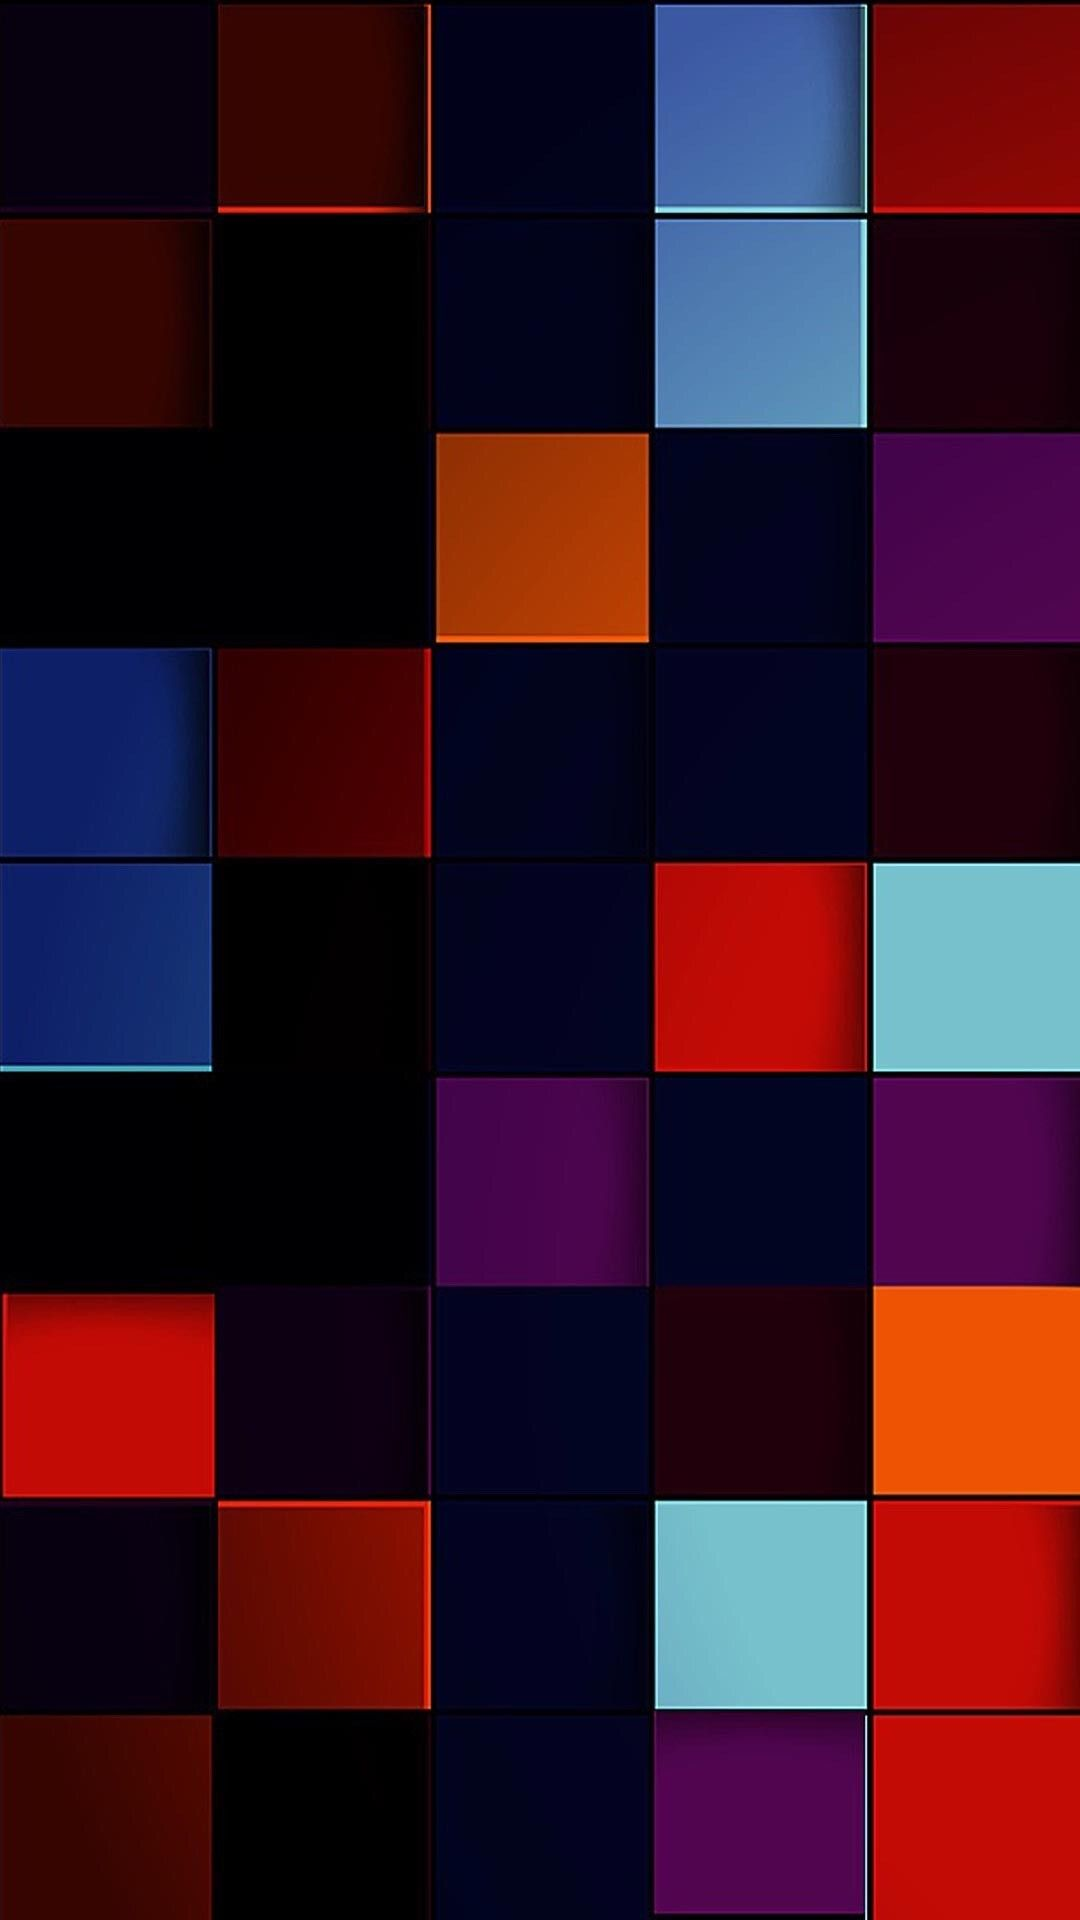 Geometric Colorful Hd Wallpaper Android Galaxy Phone Wallpaper Geometric Shapes Wallpaper Abstract Iphone Wallpaper